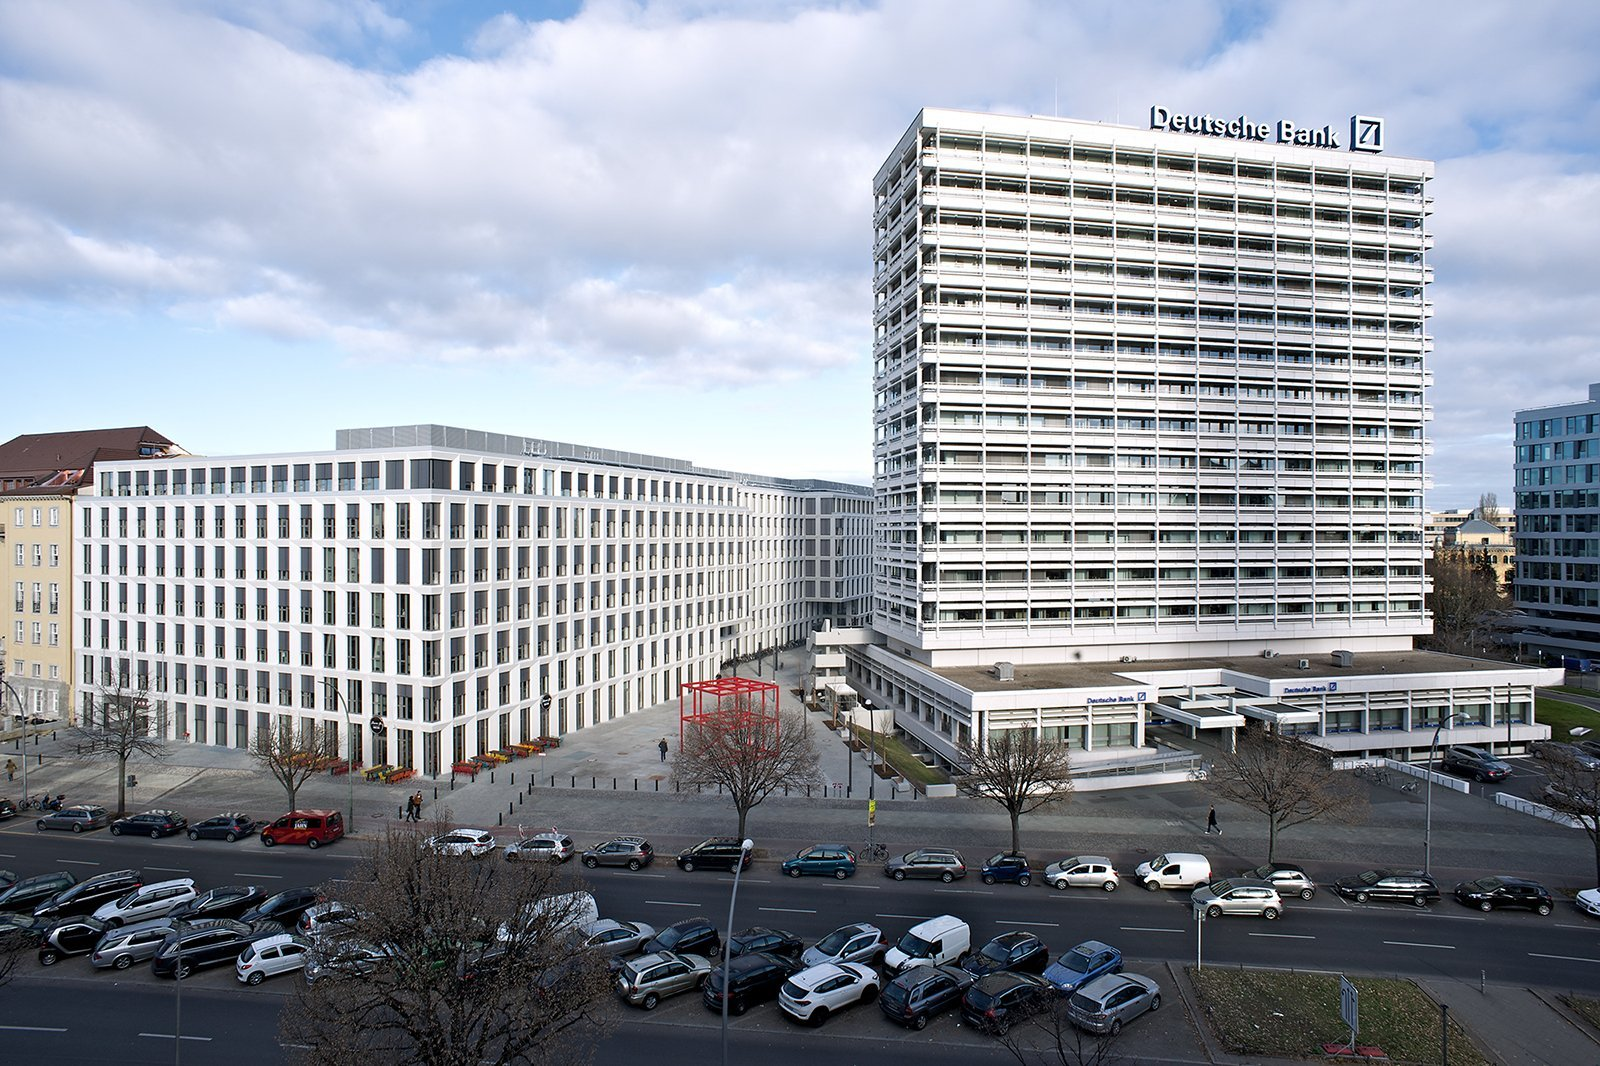 Deutsche Bank Campus